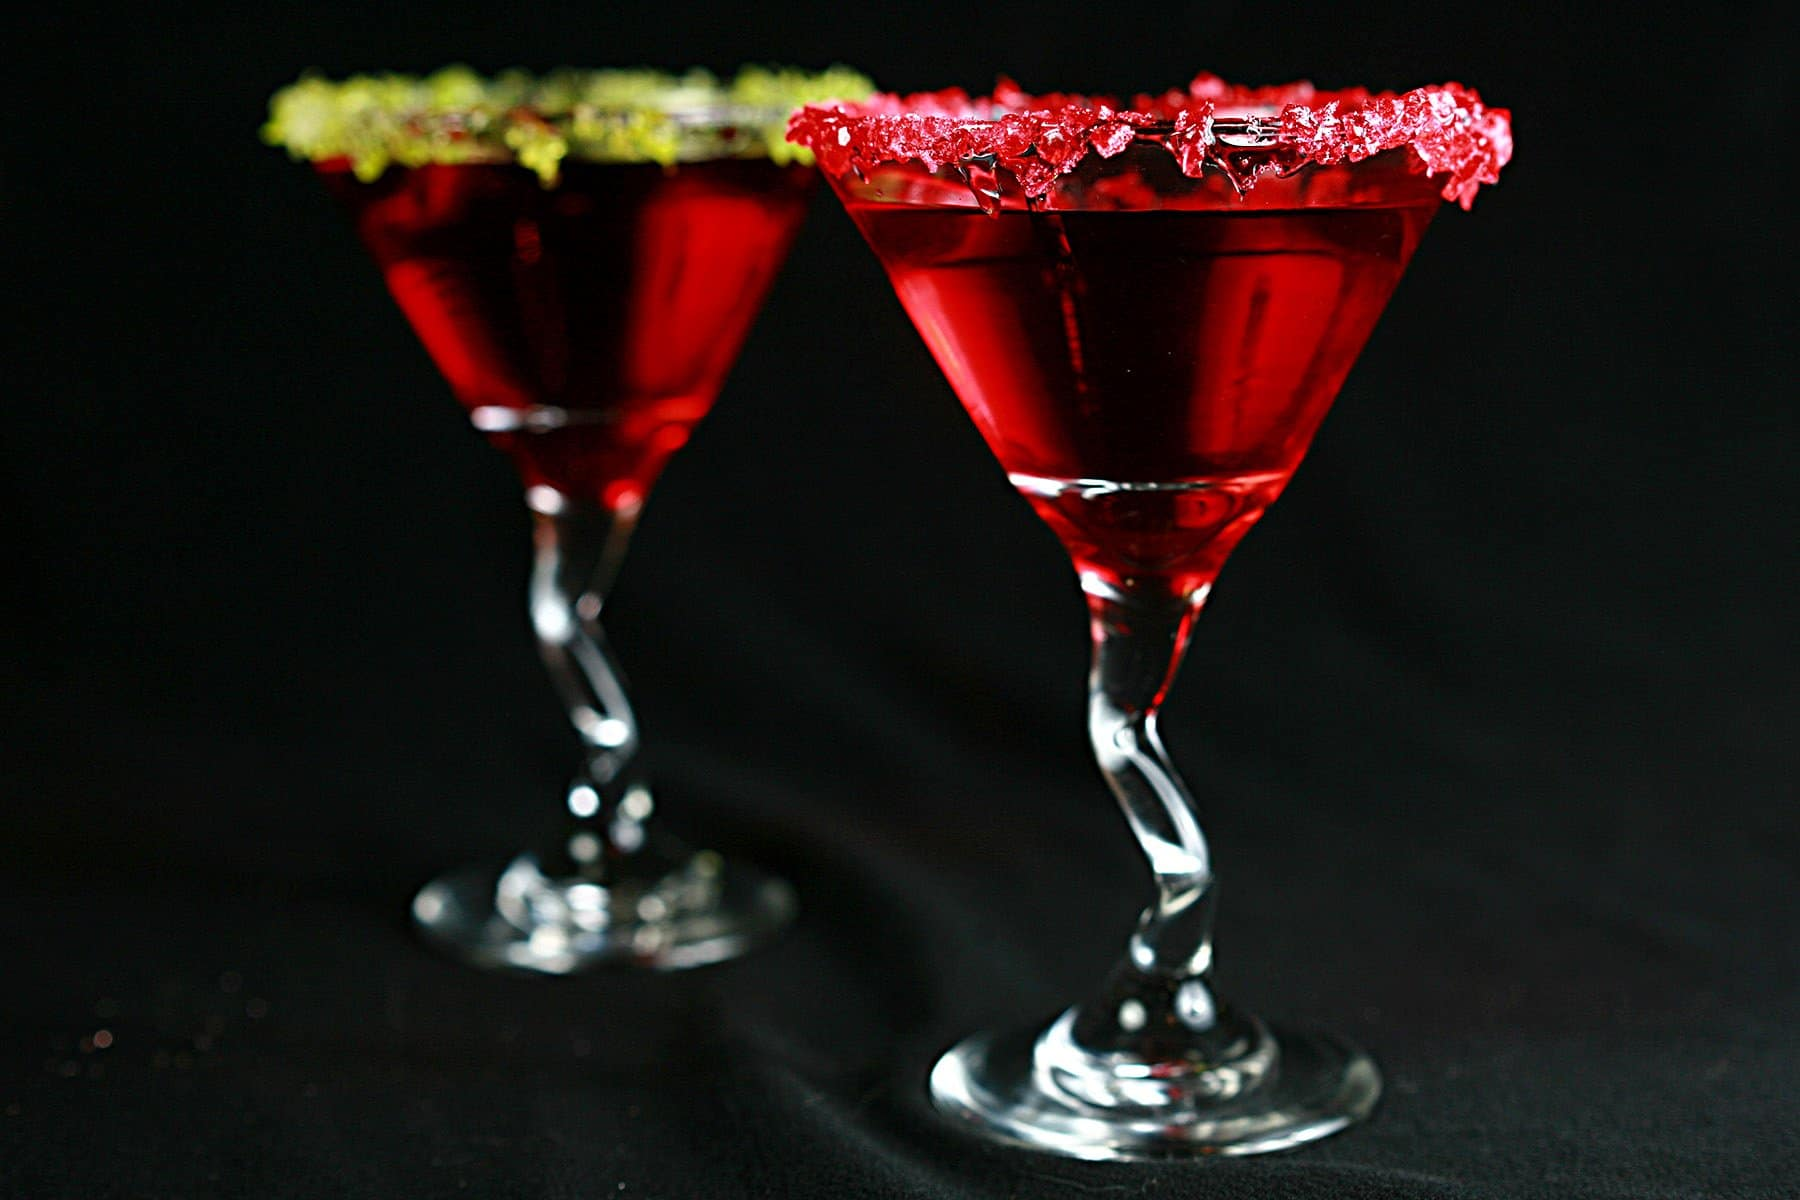 Two Martini cocktails - a Red drink in a martini glass. One is rimmed with crushed green candy, the other is rimmed with a red crushed candy.